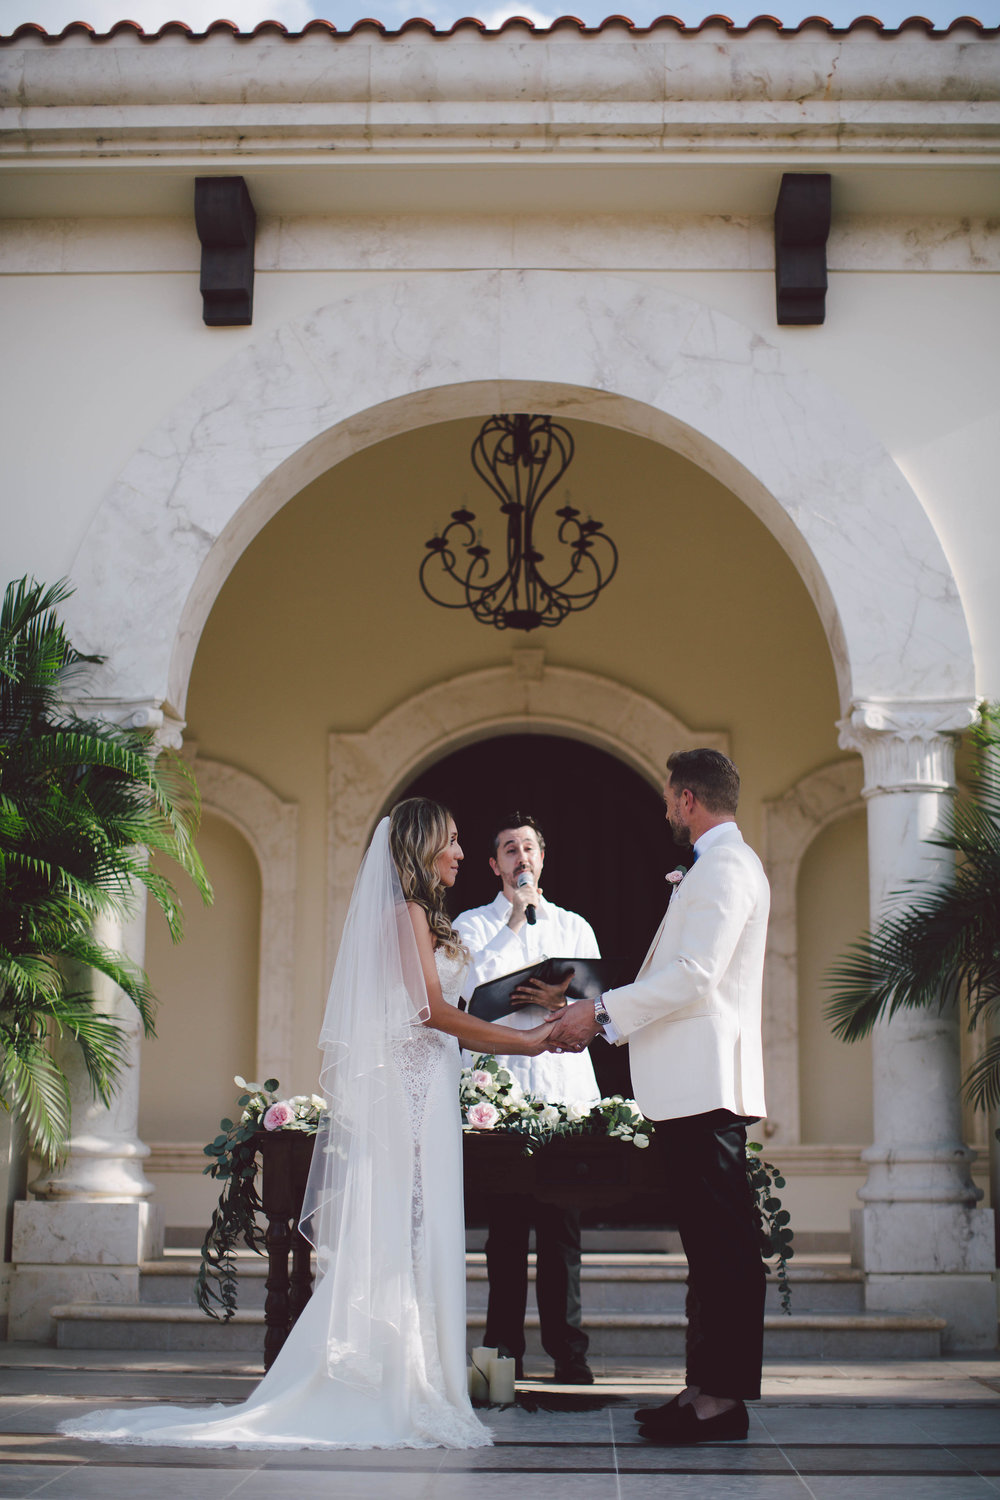 mexico_wedding_cancun_villa_la_joya_evangeline_lane_051.jpg